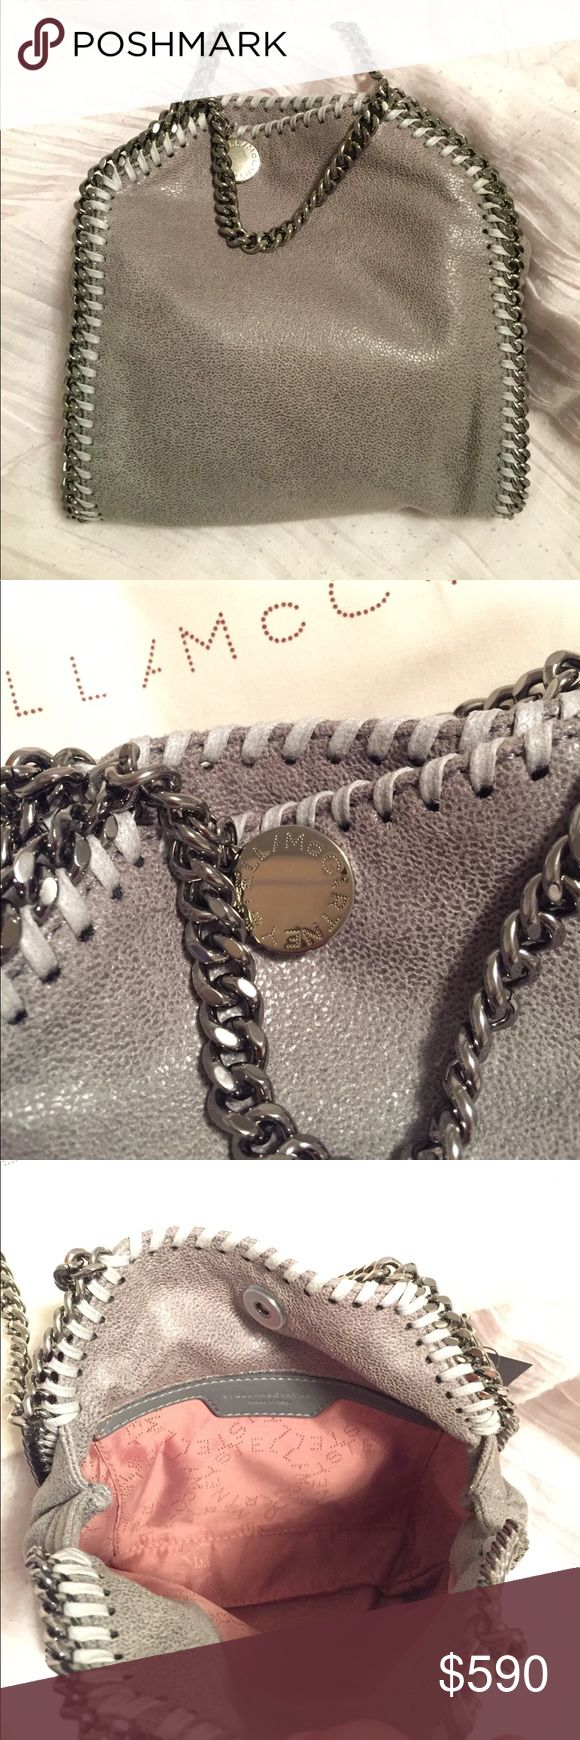 Stella McCartney Tiny Falabella Shaggy Deer Bag Brand new tiny Falabella bag in gray blue with gun metal hardware.  Comes with cards and dust bag. Stella McCartney Bags Shoulder Bags